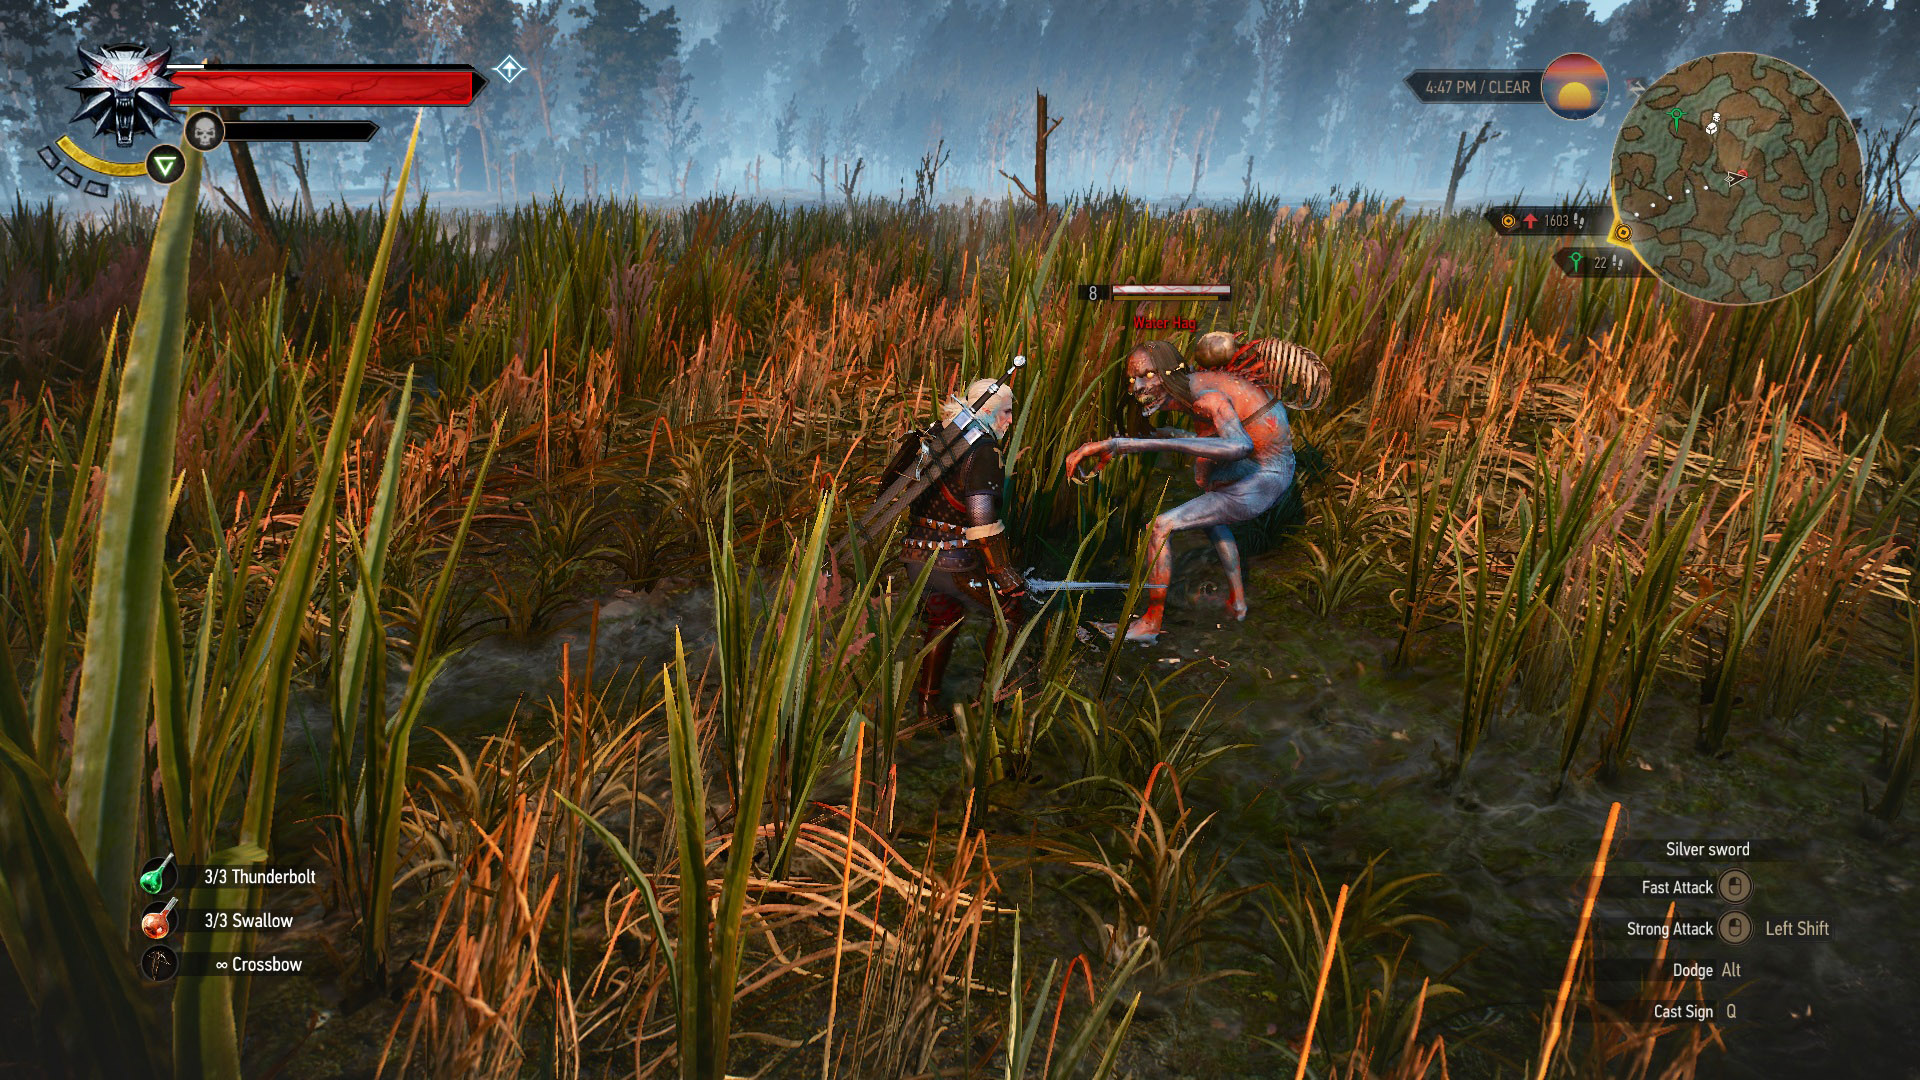 Gwent card locations the witcher 3 - Gwent Card Locations The Witcher 3 57